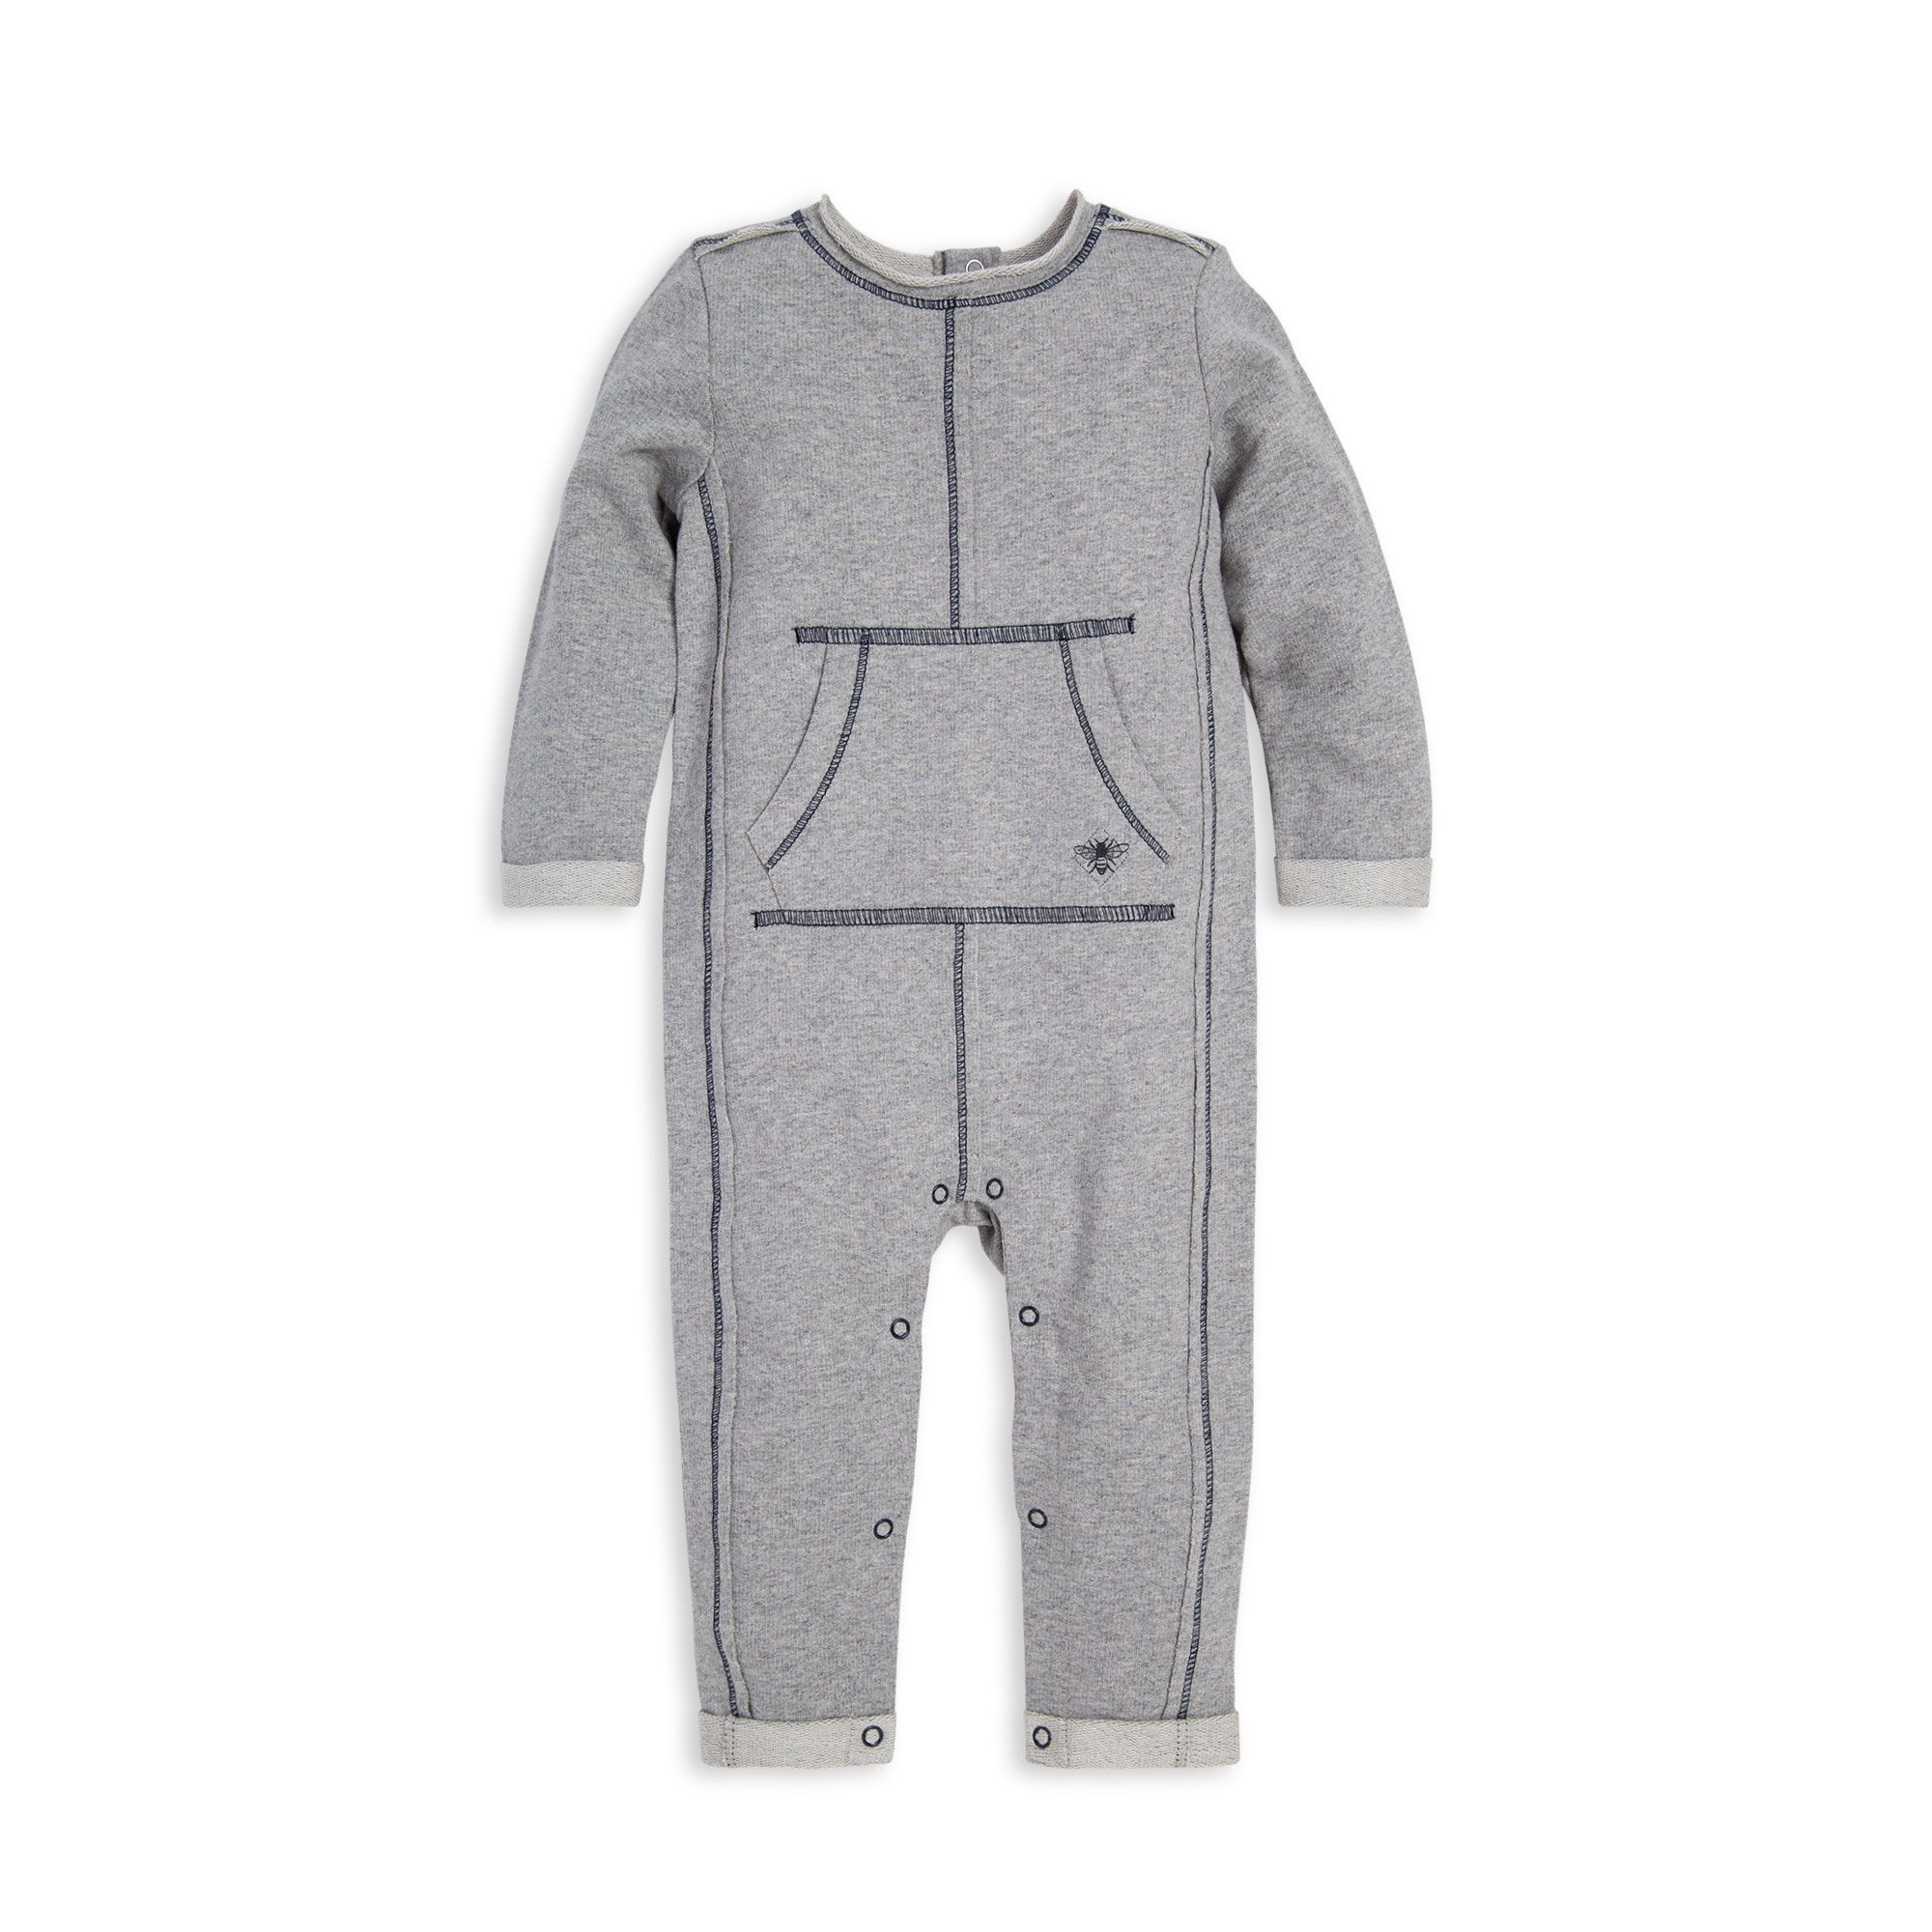 French Terry Raw Edge Organic Baby Jumpsuit